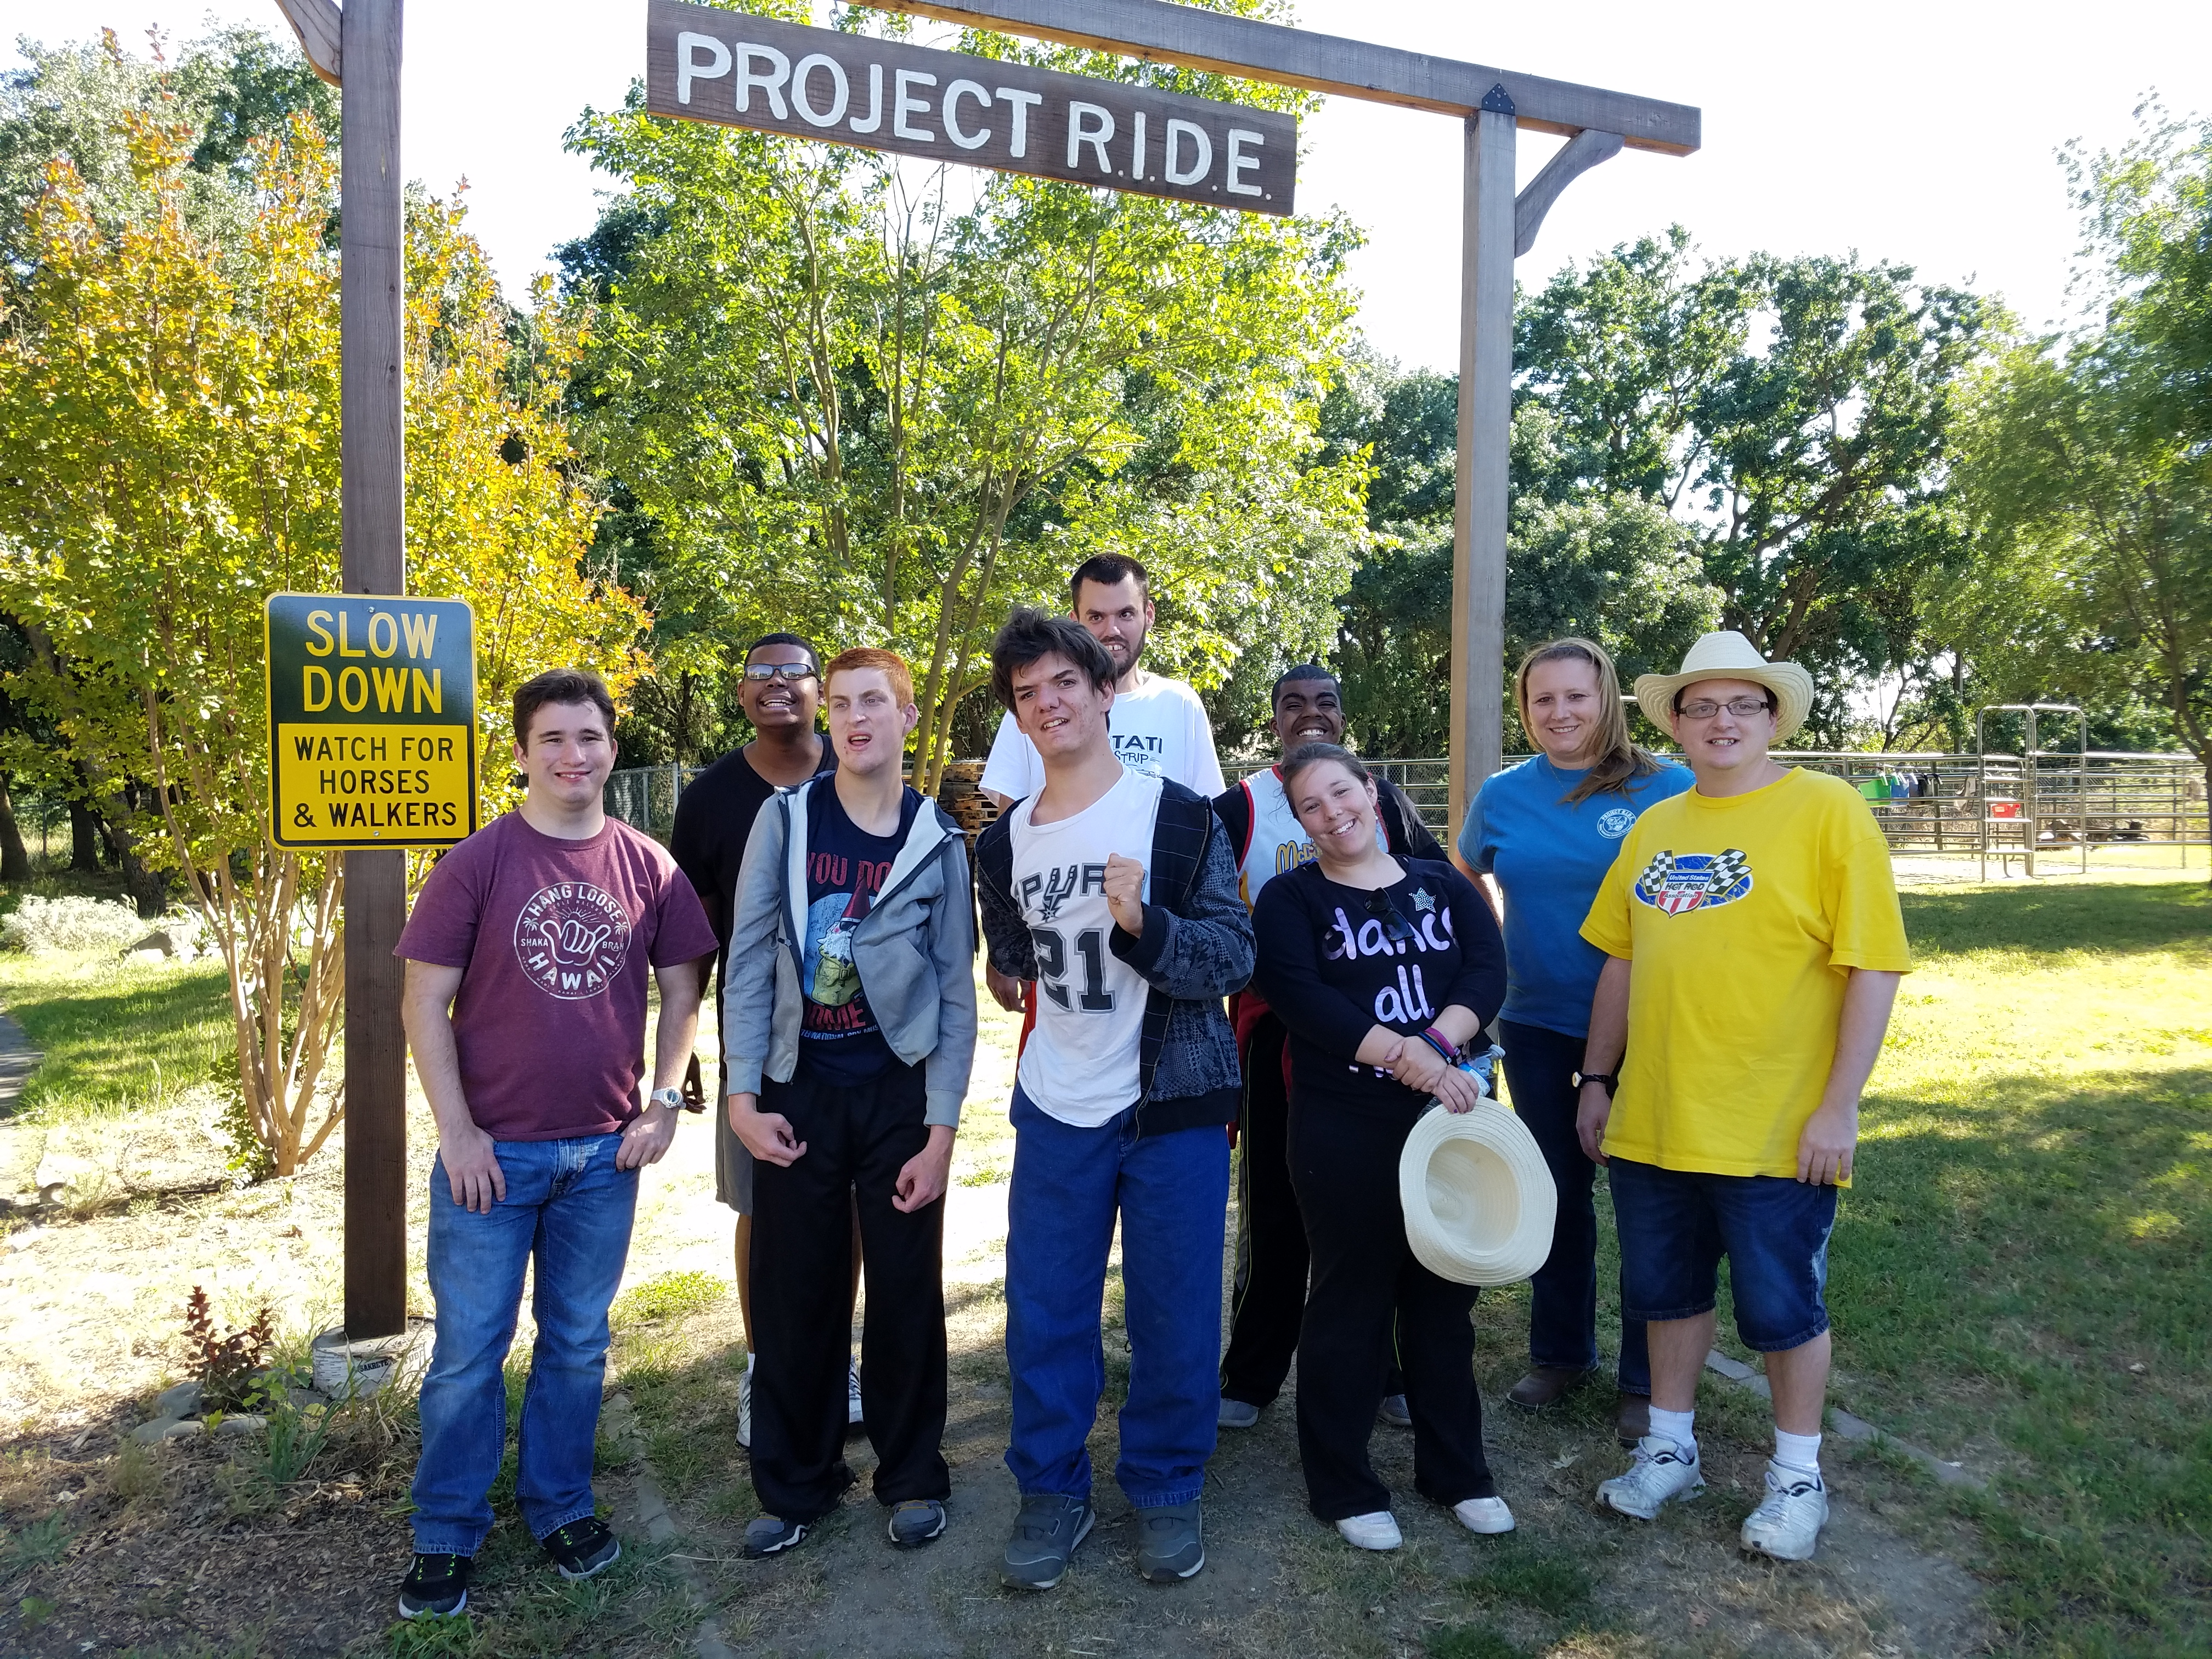 18up Club participants at the trailhead for Project RIDE